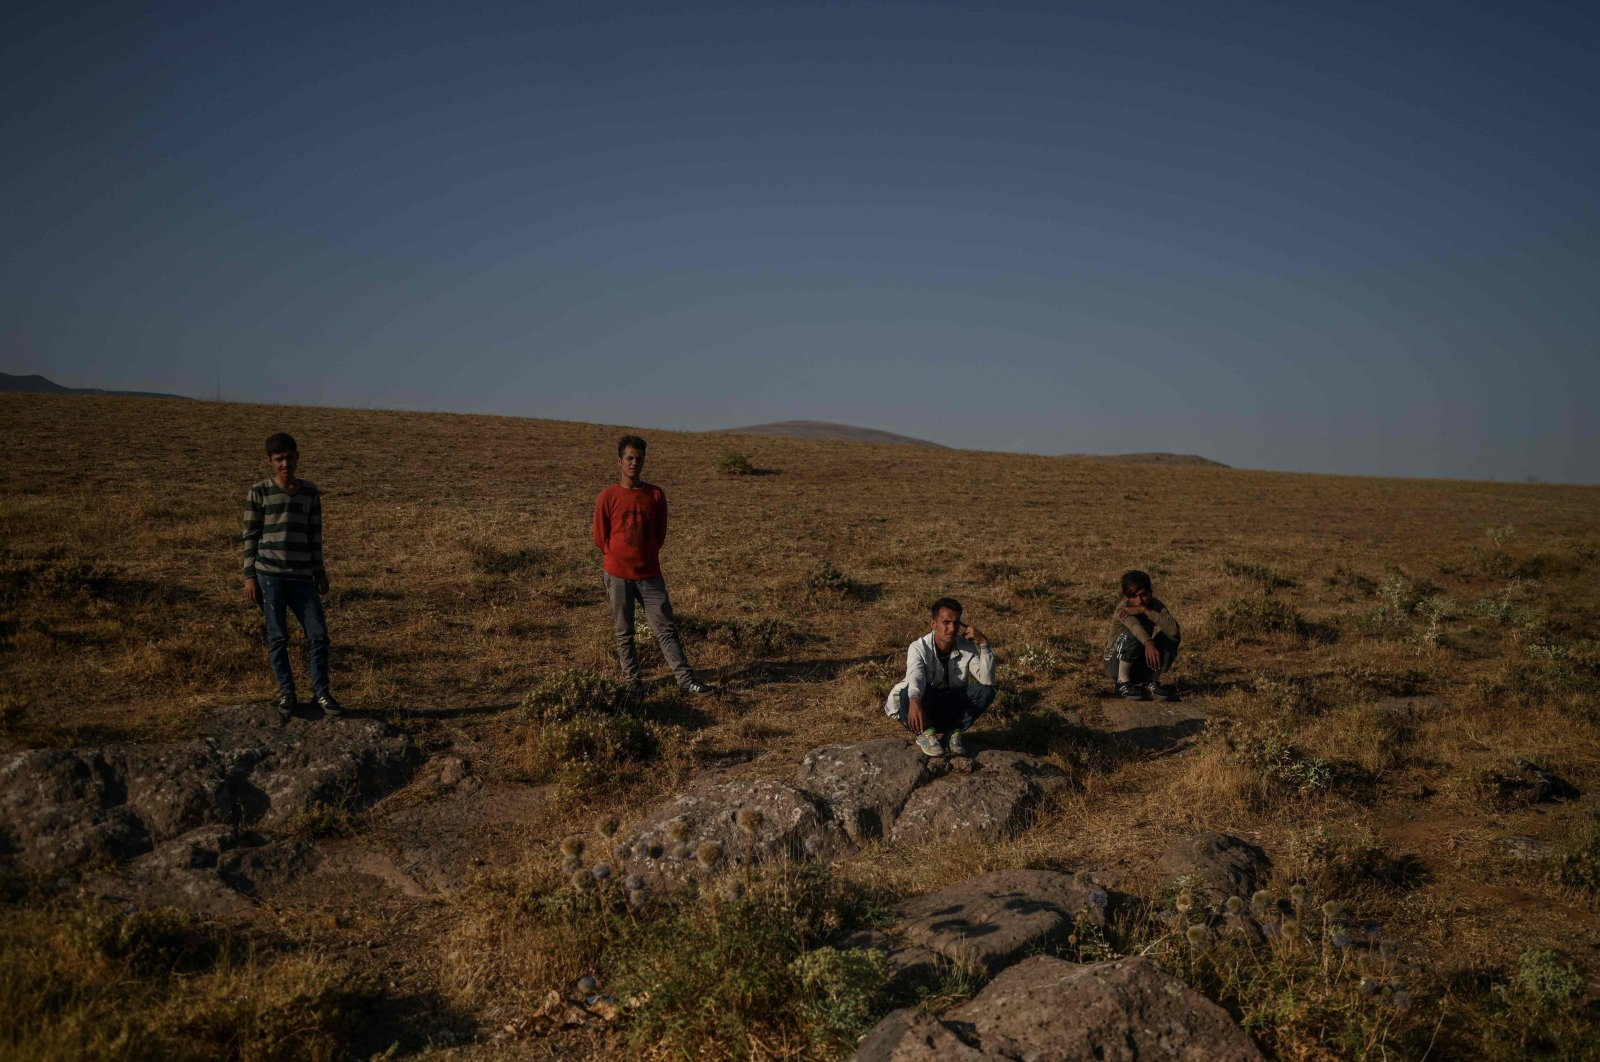 Afghan migrants rest while waiting for transport from smugglers after crossing the Iran-Turkish border, Tatvan, on the western shores of Lake Van, eastern Turkey, on Aug. 15, 2021. (Ozan KÖSE / AFP)